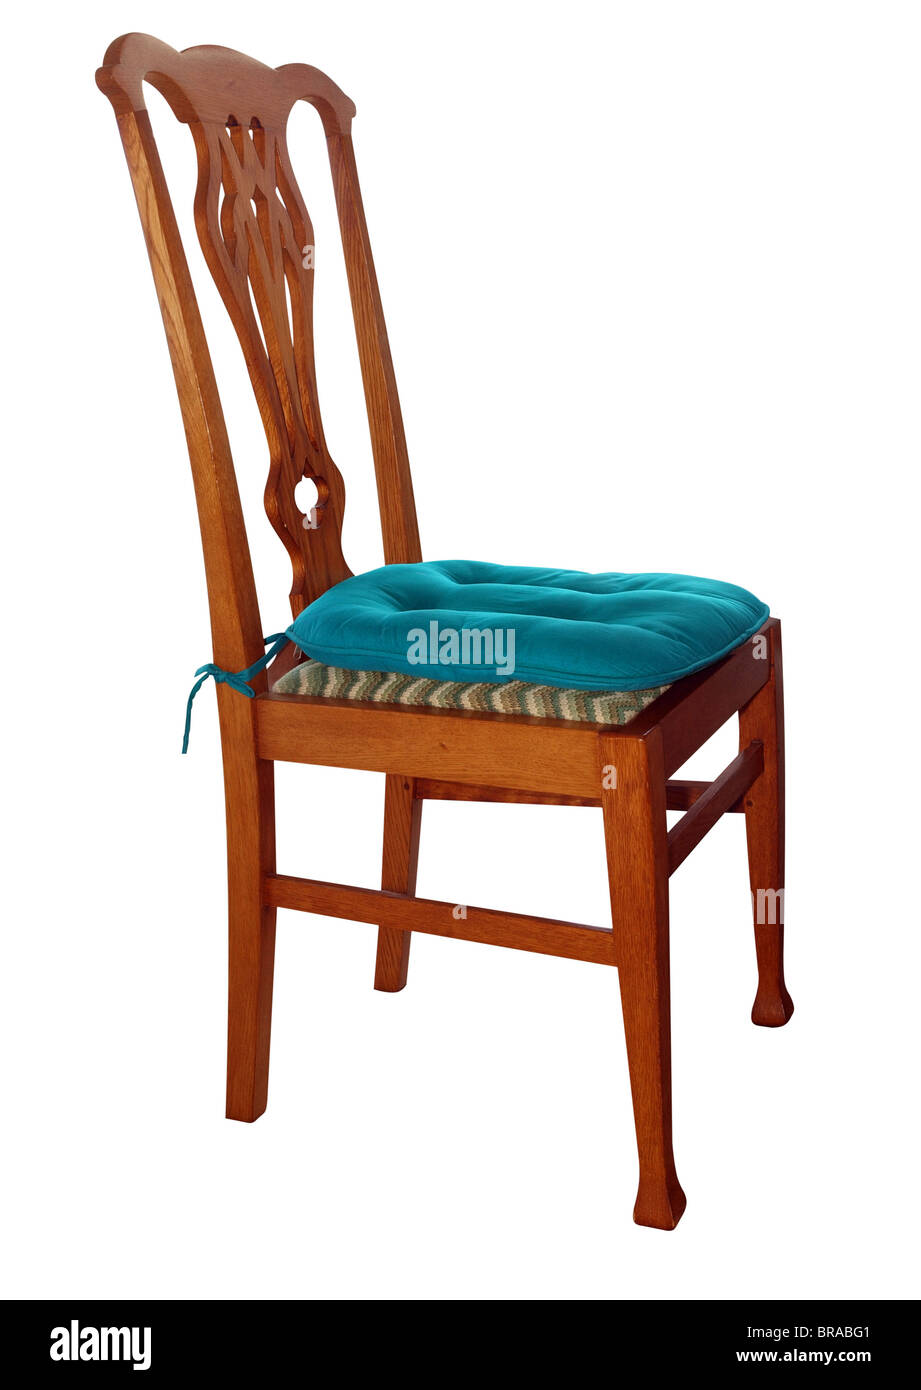 Padded Chair Stockfotos & Padded Chair Bilder - Alamy